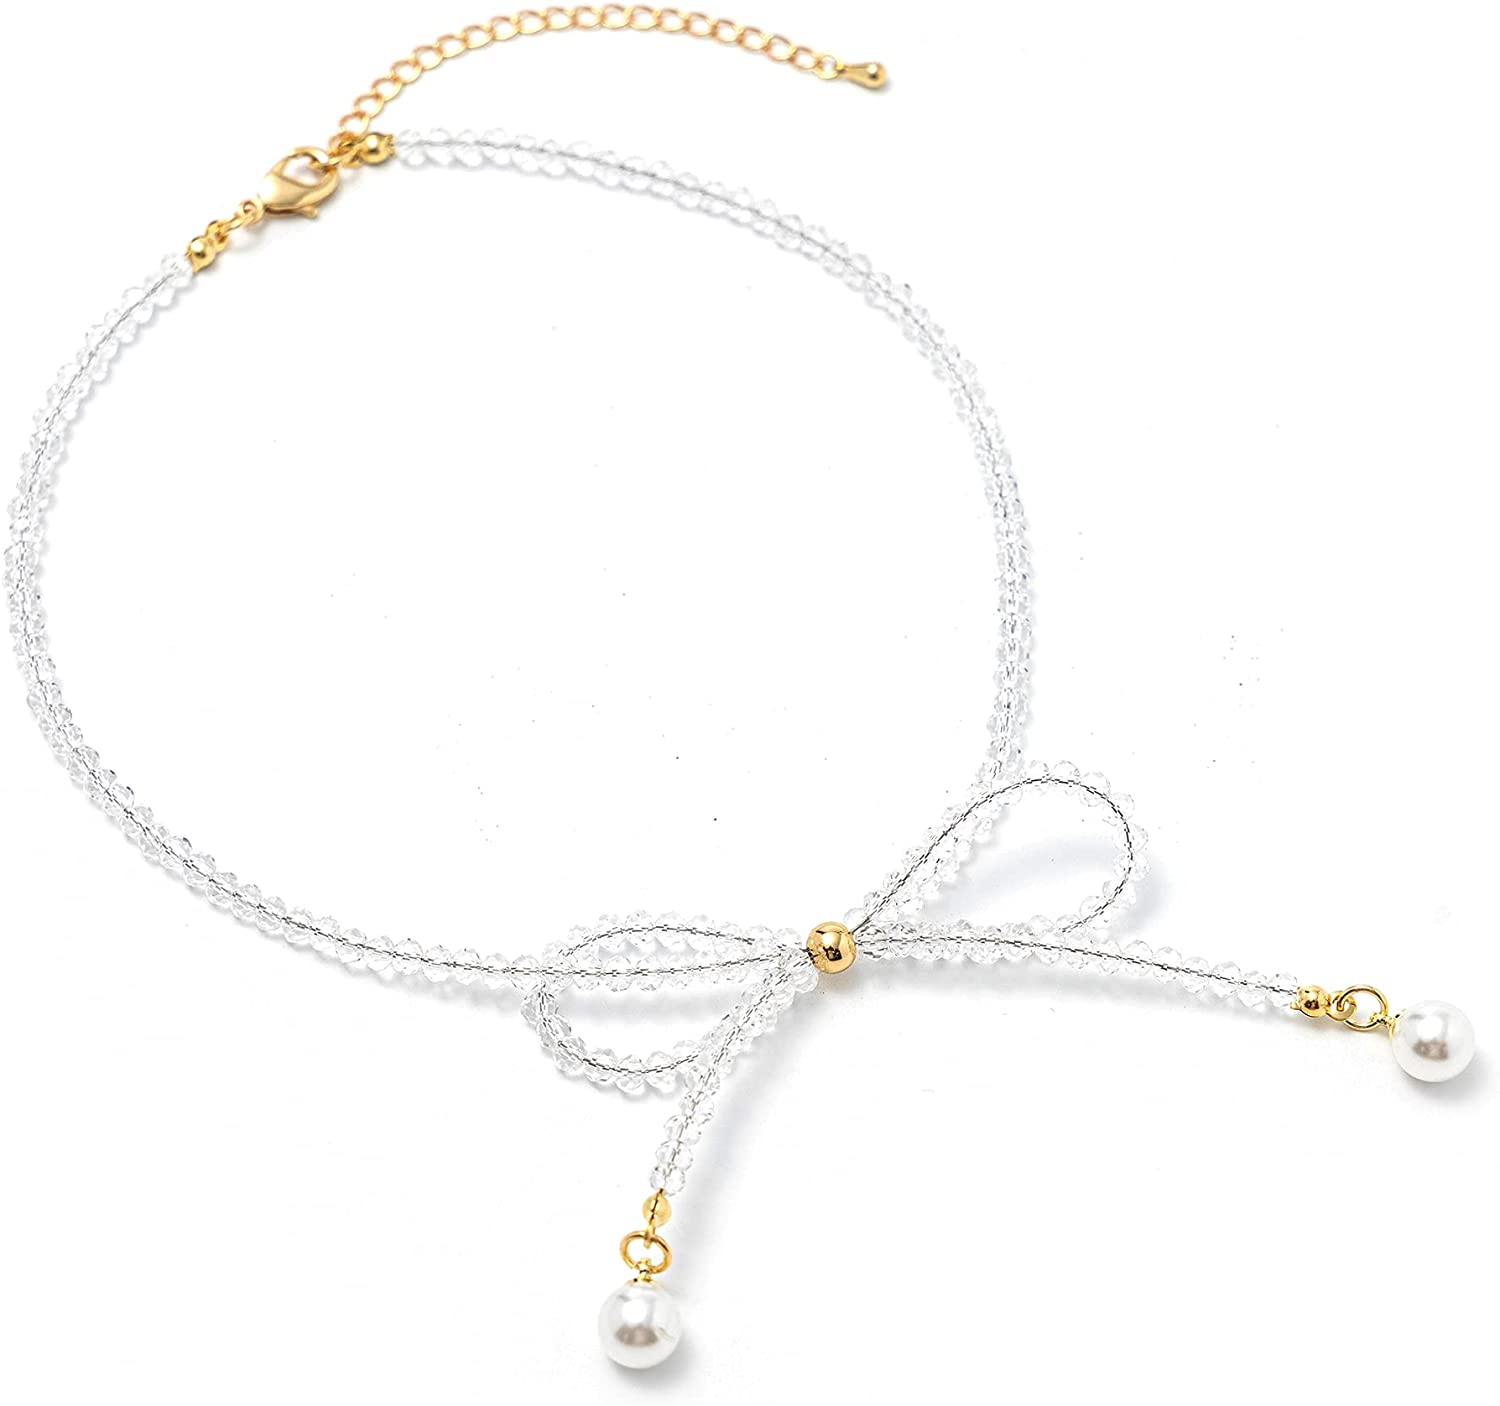 Crystal Bow Tie Choker Necklace Cute Personality Necklace